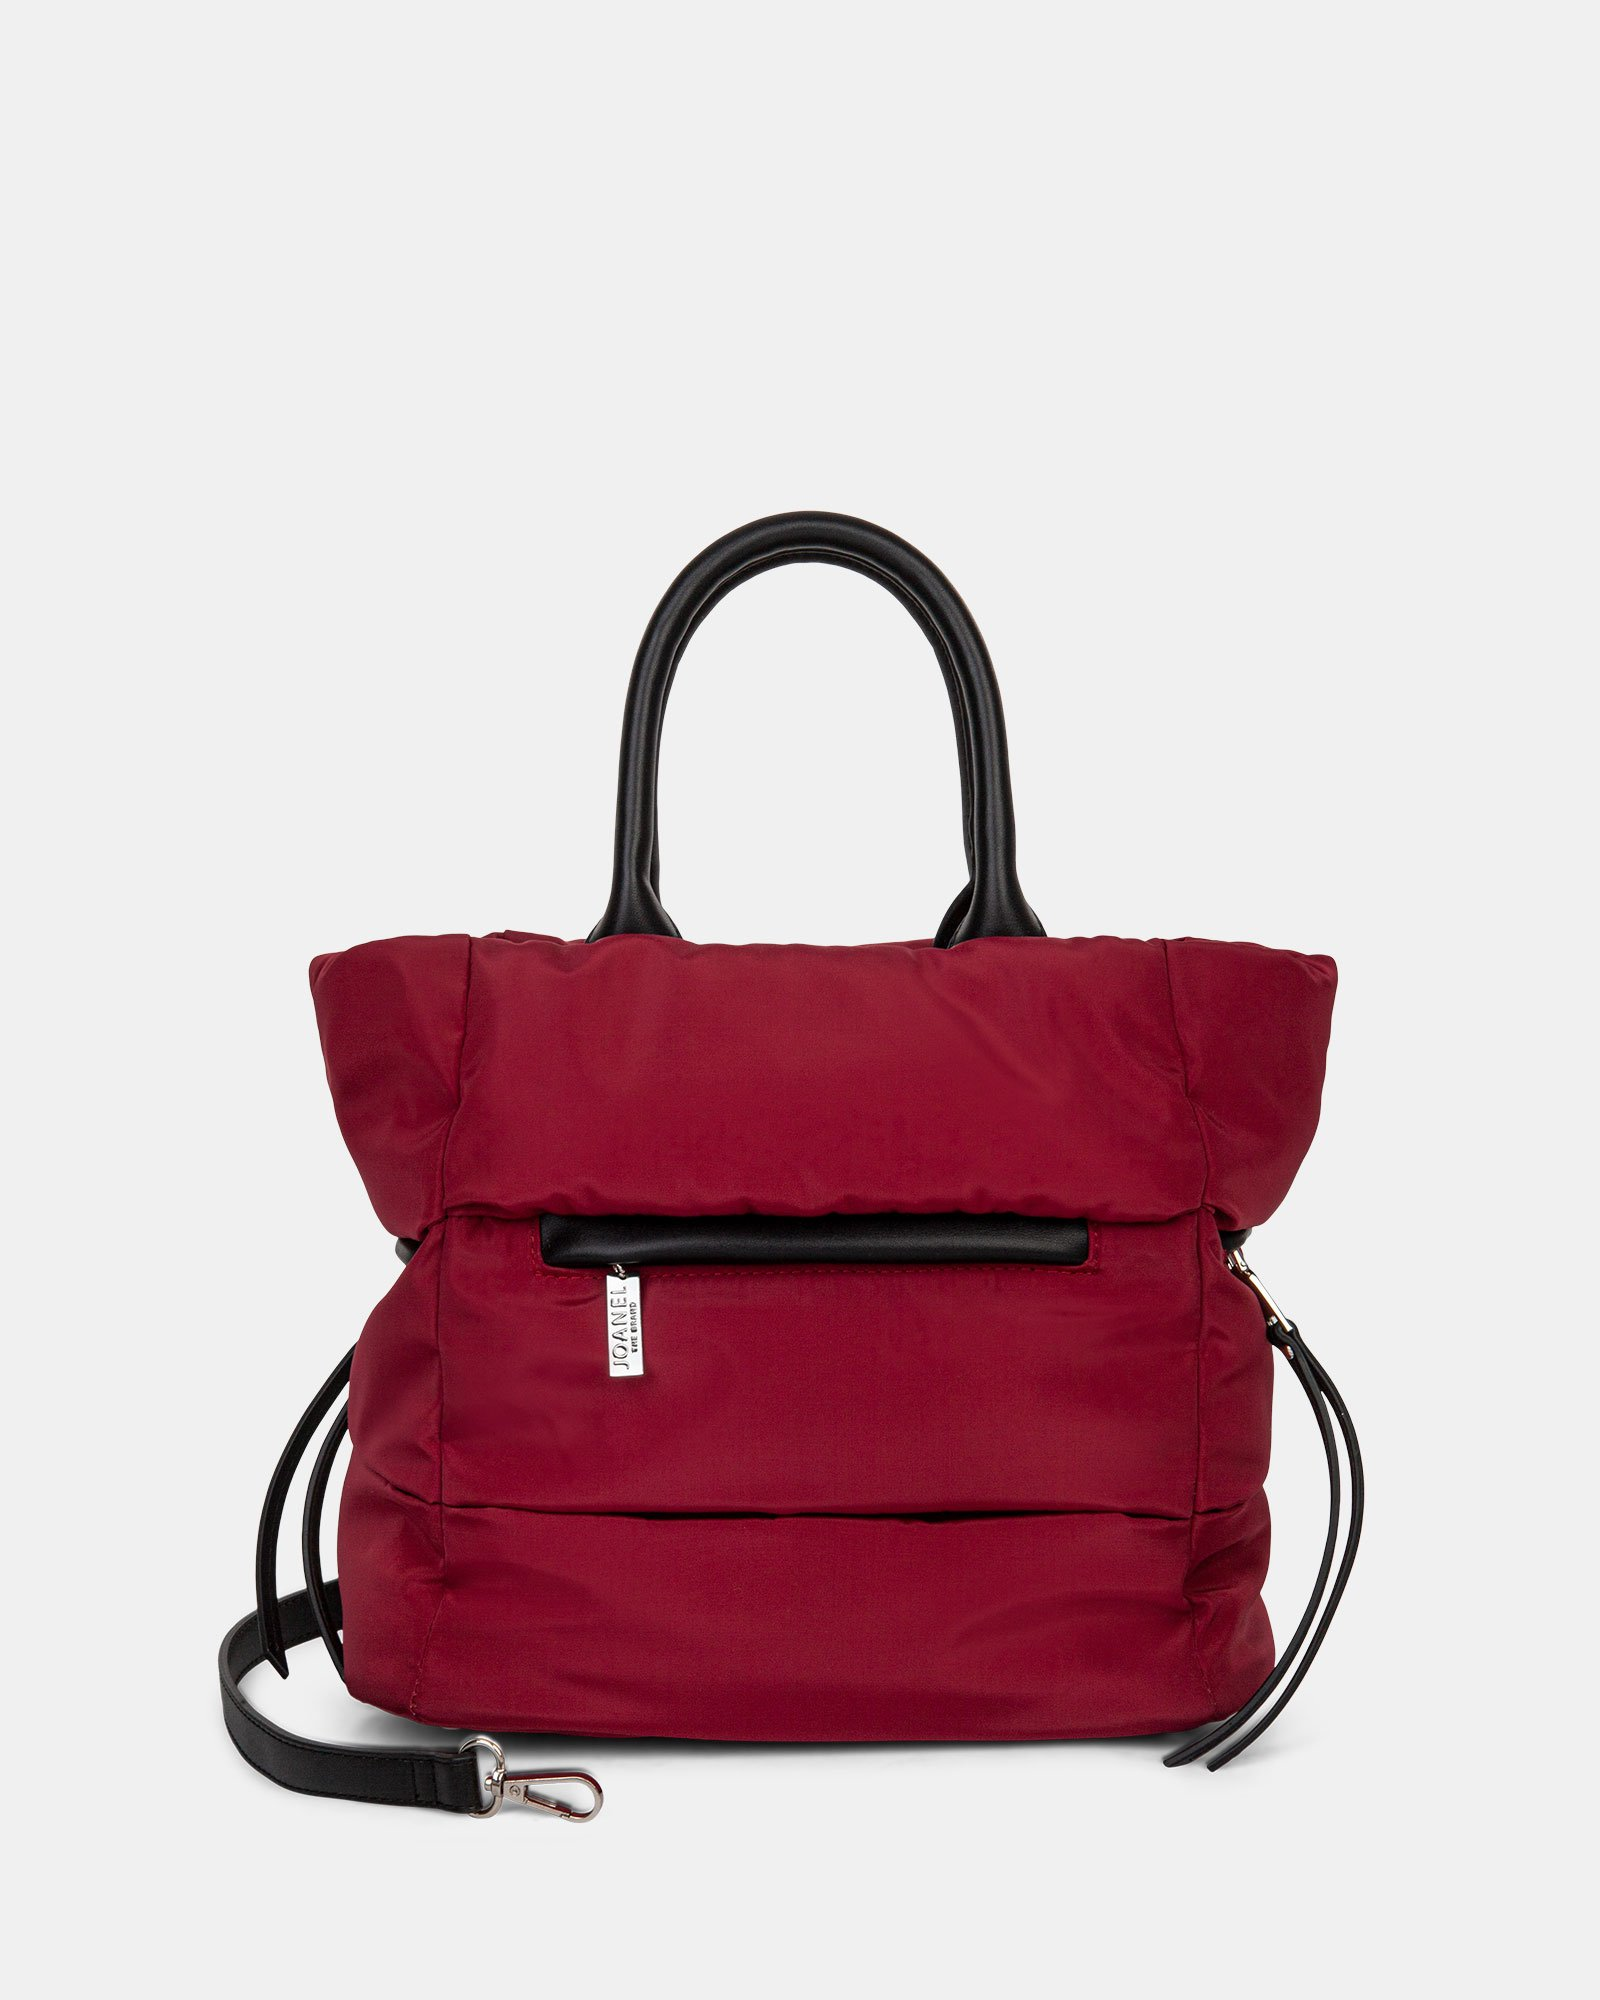 Hi Cloud - Tote bag with Main zippered compartment - Bordeaux - Joanel - Zoom